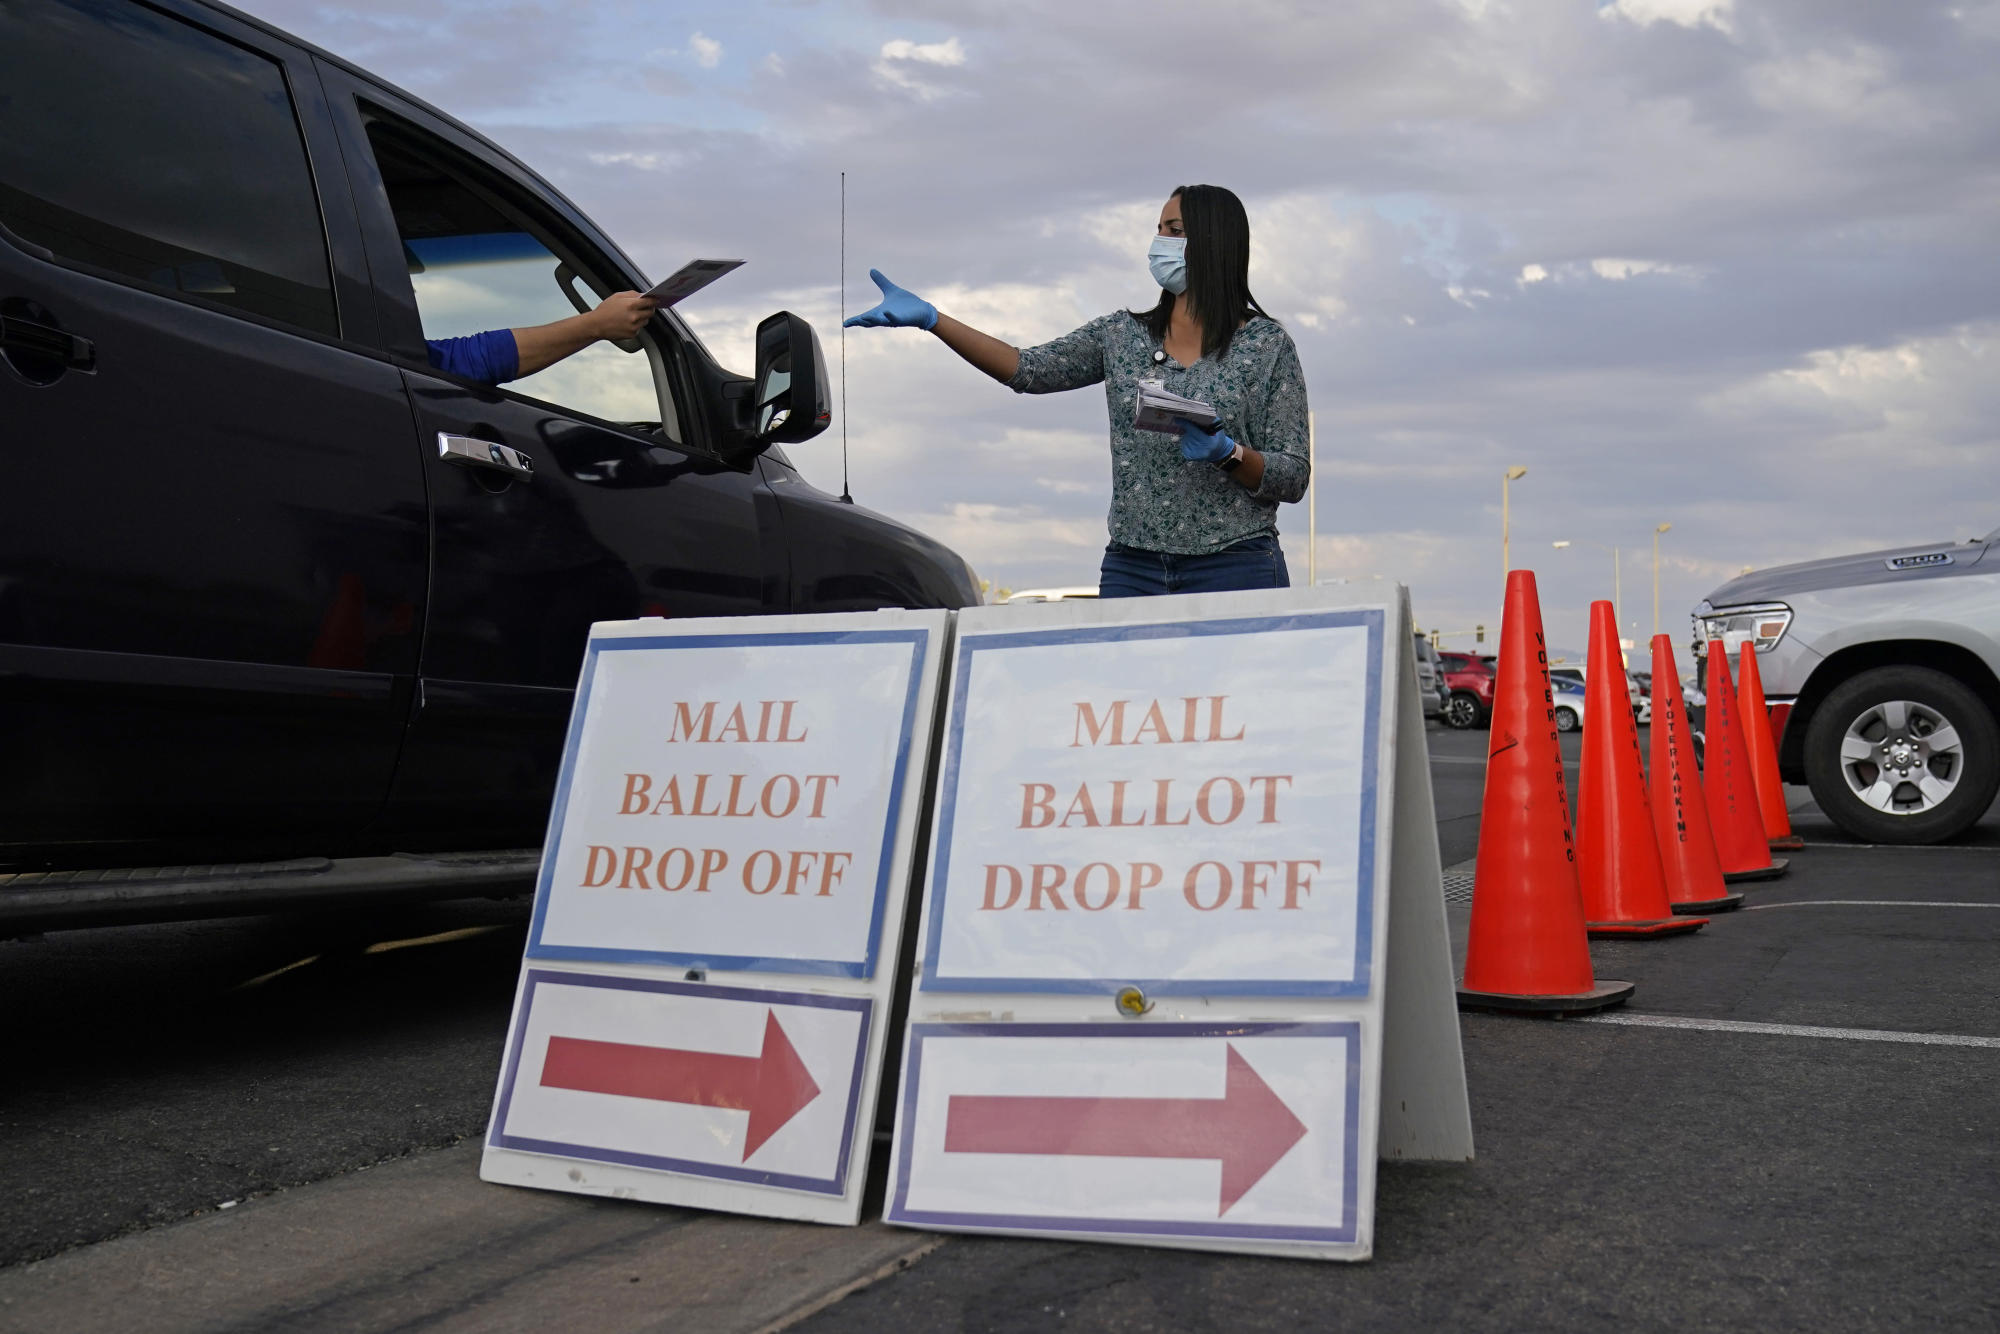 EXPLAINER: Trump's challenges fail to prove election fraud